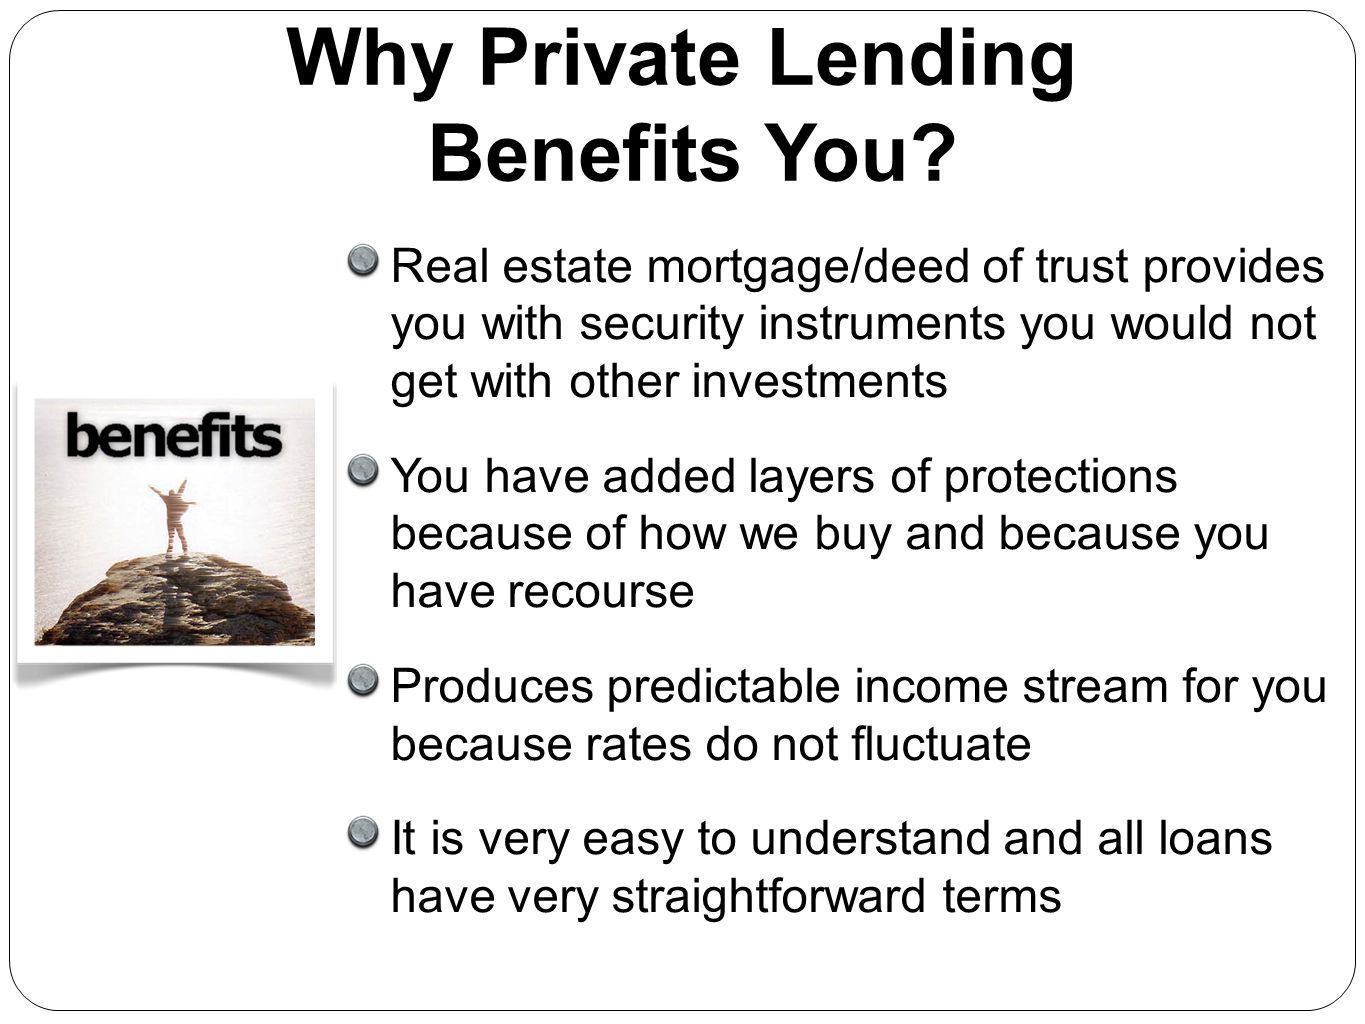 Why Private Lending Benefits You